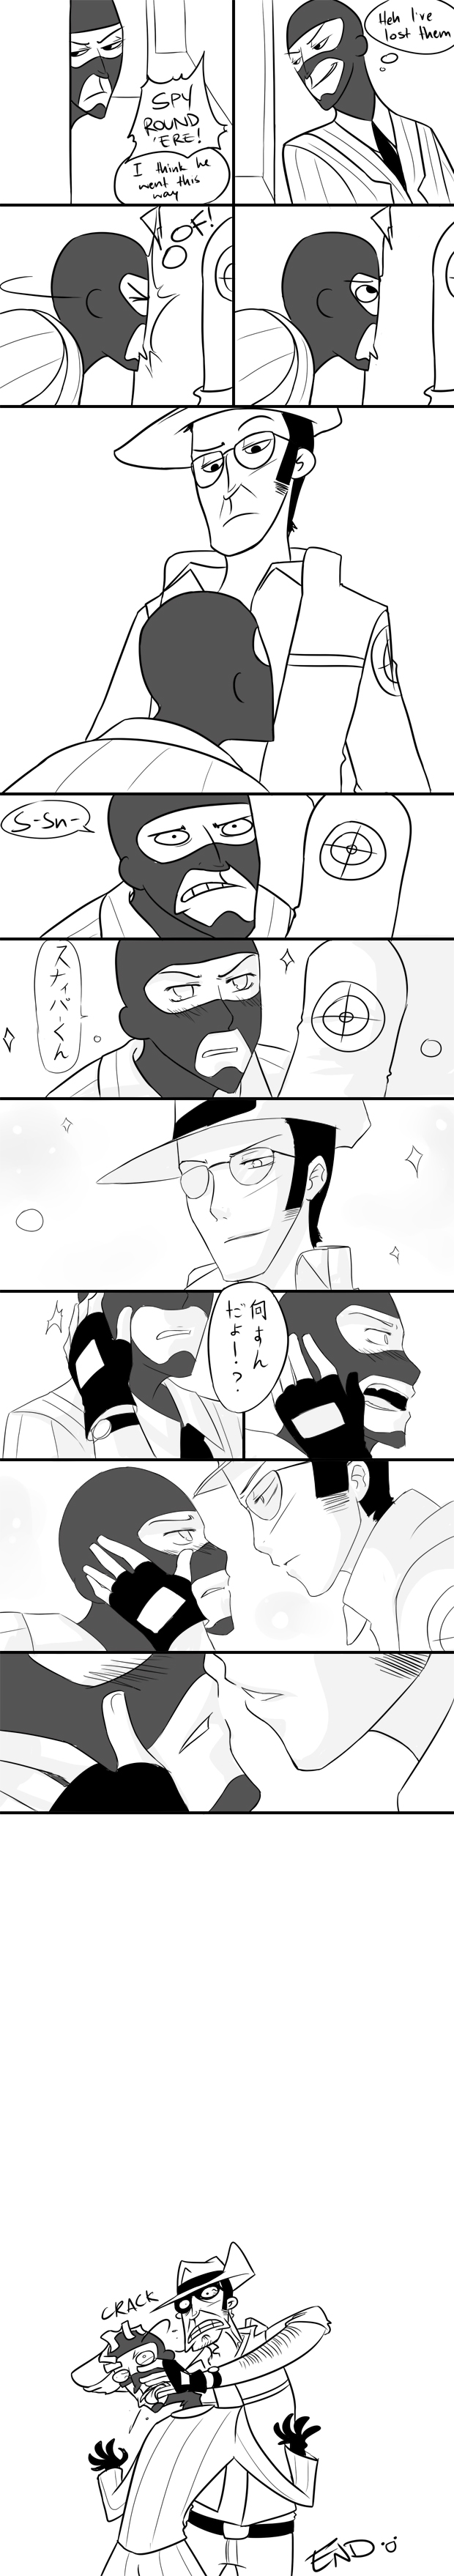 spy - you laugh you lose - comic style